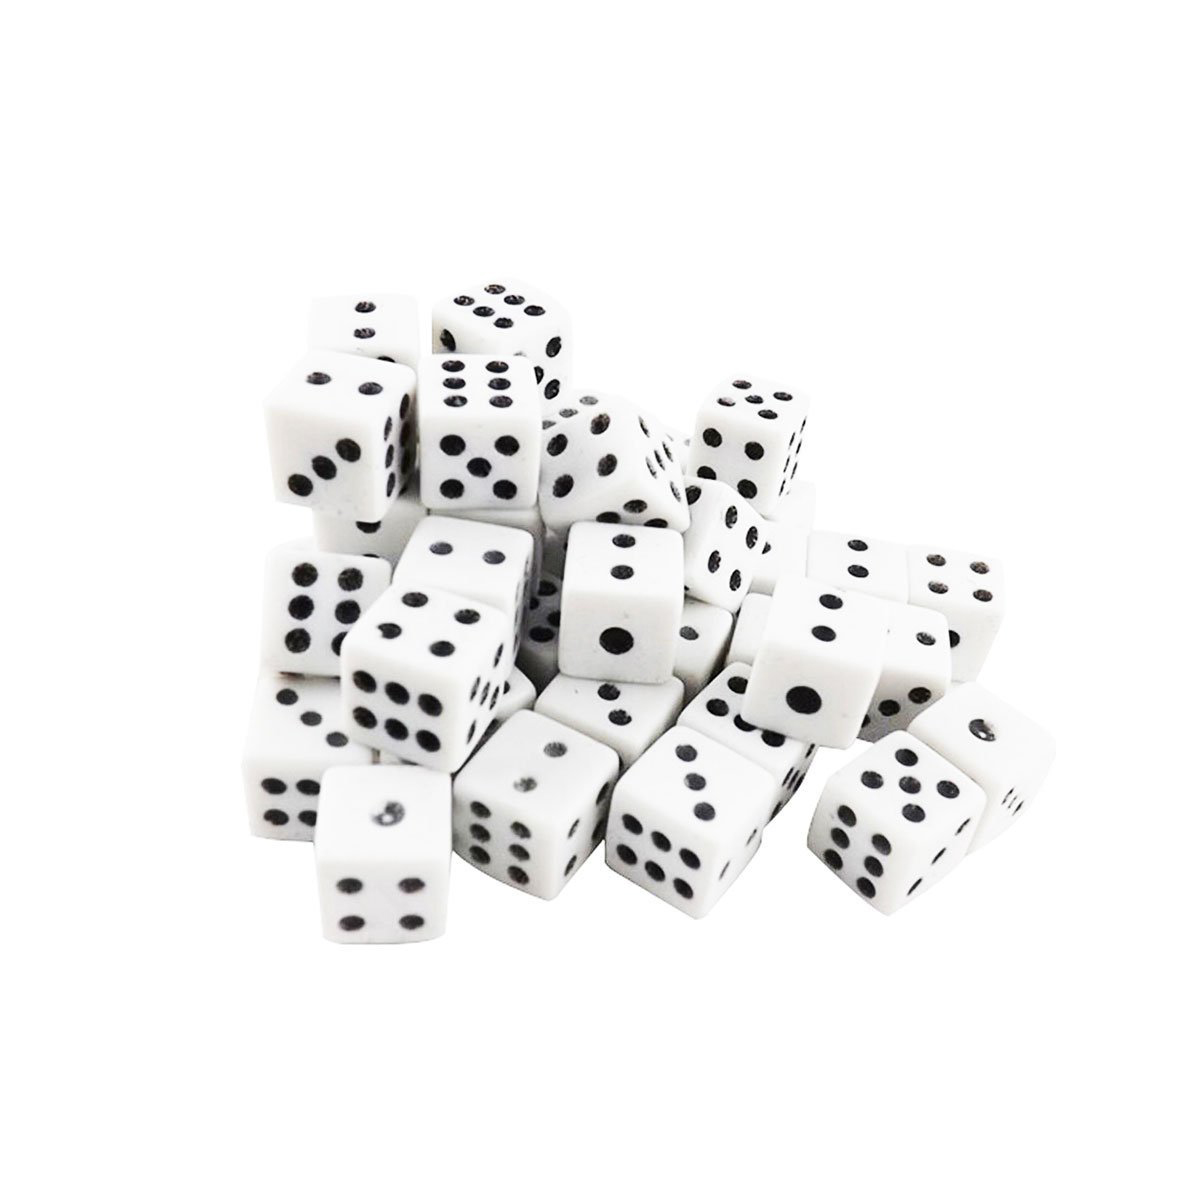 White Opaque Black Pips Dots Square Dice Set Casino Party Favors ...